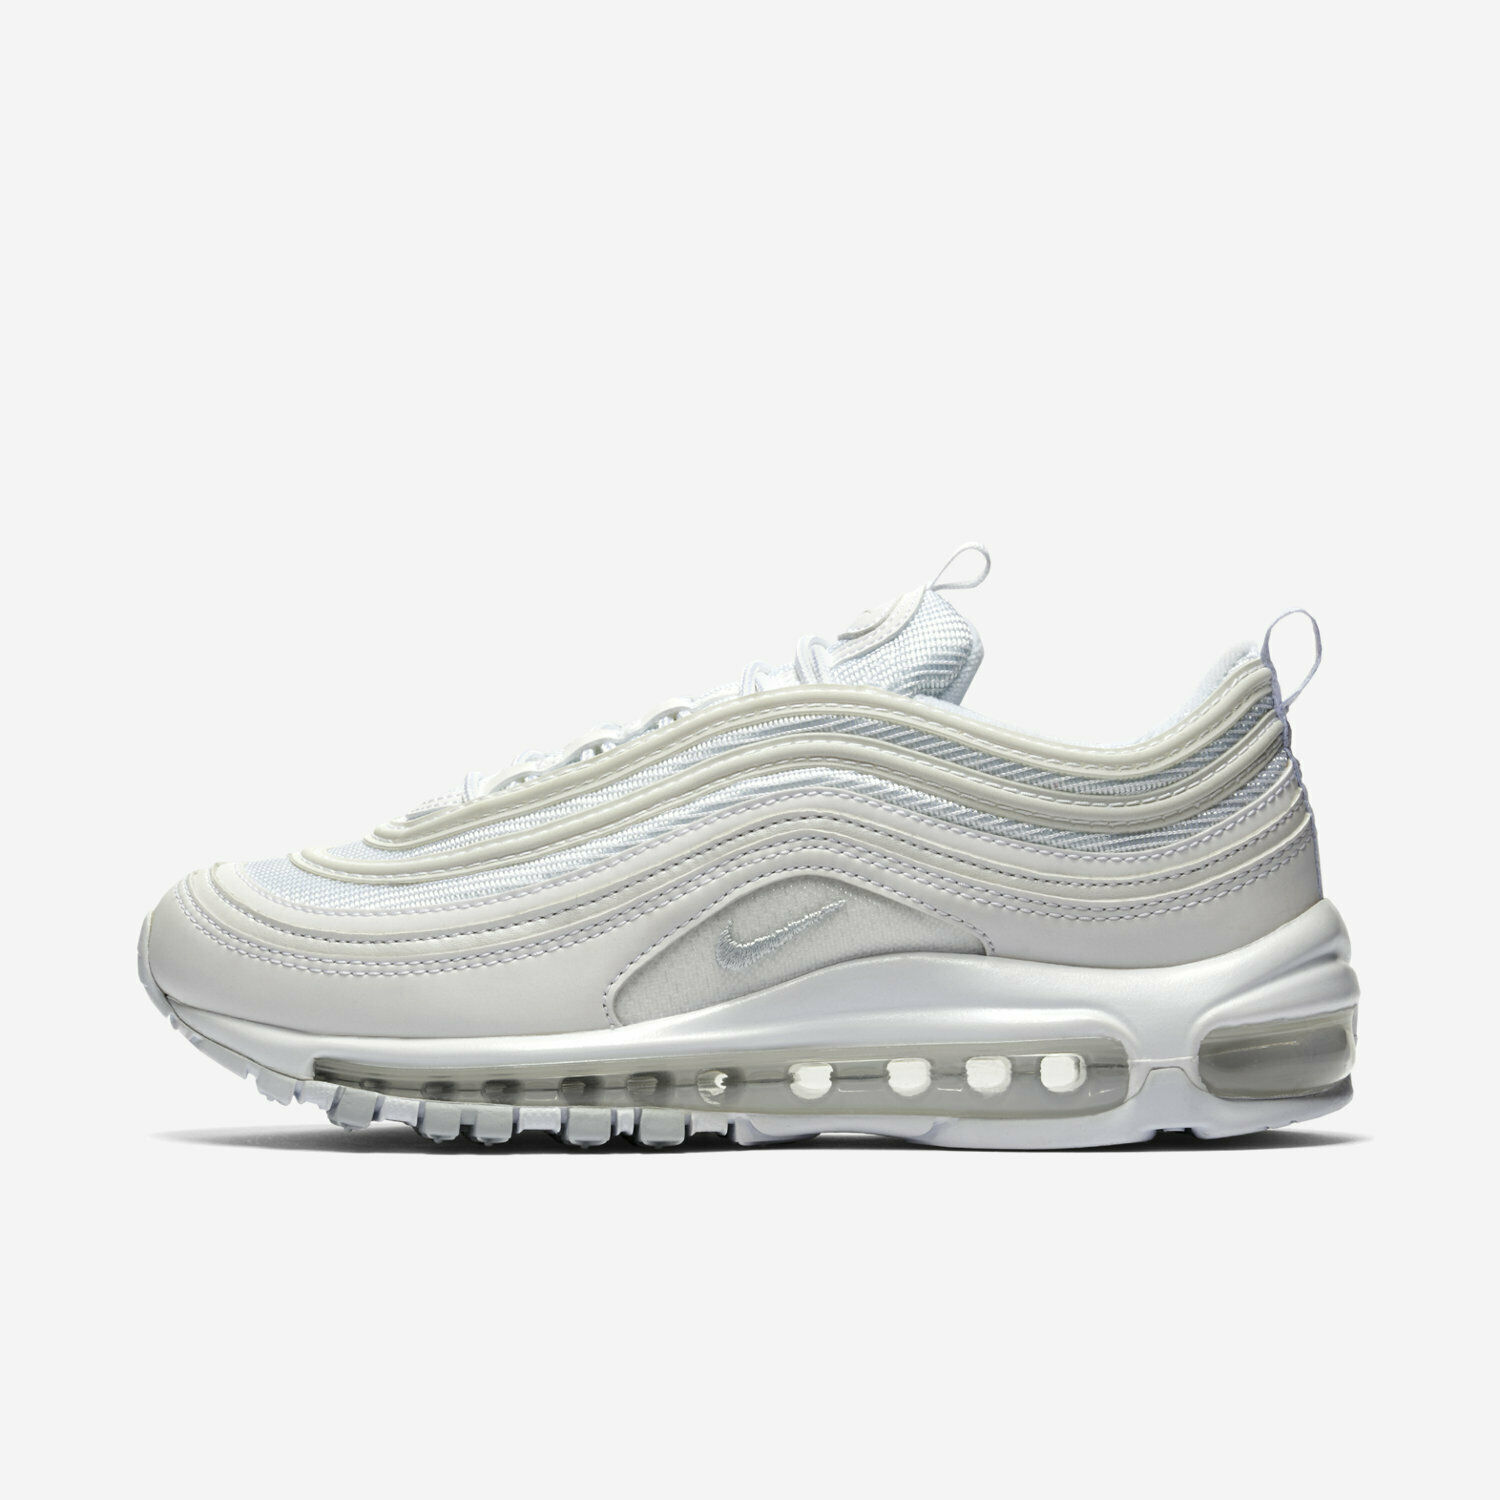 Nike Air Max 97 White Pure Platinum W